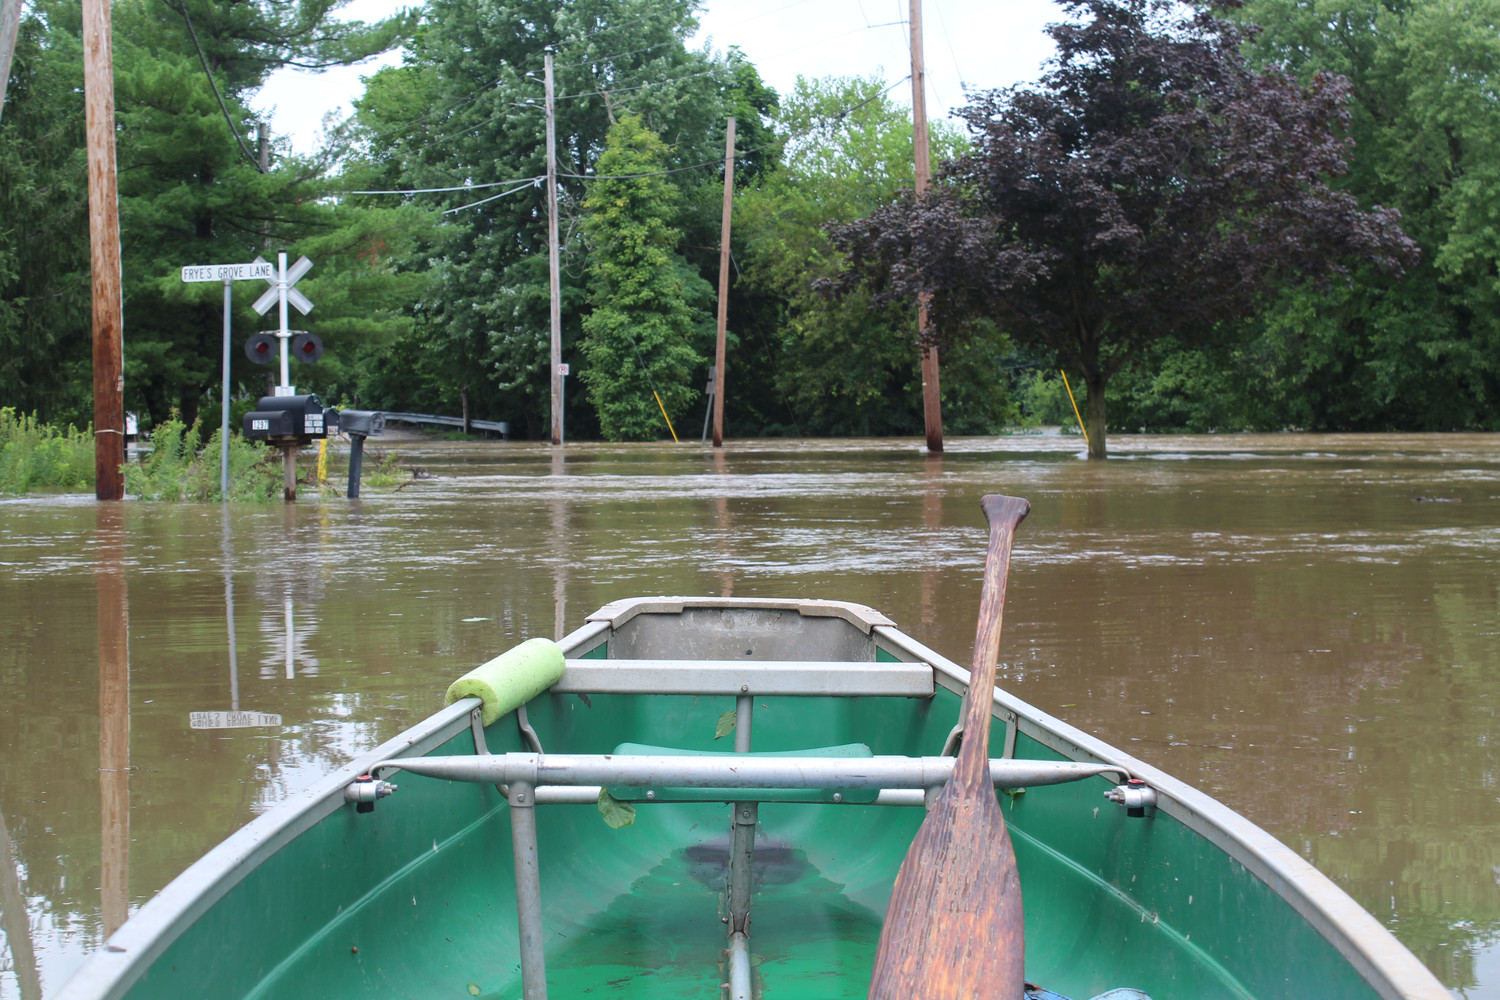 A canoe was tied to a pole near Swatara Park Road on Wednesday.